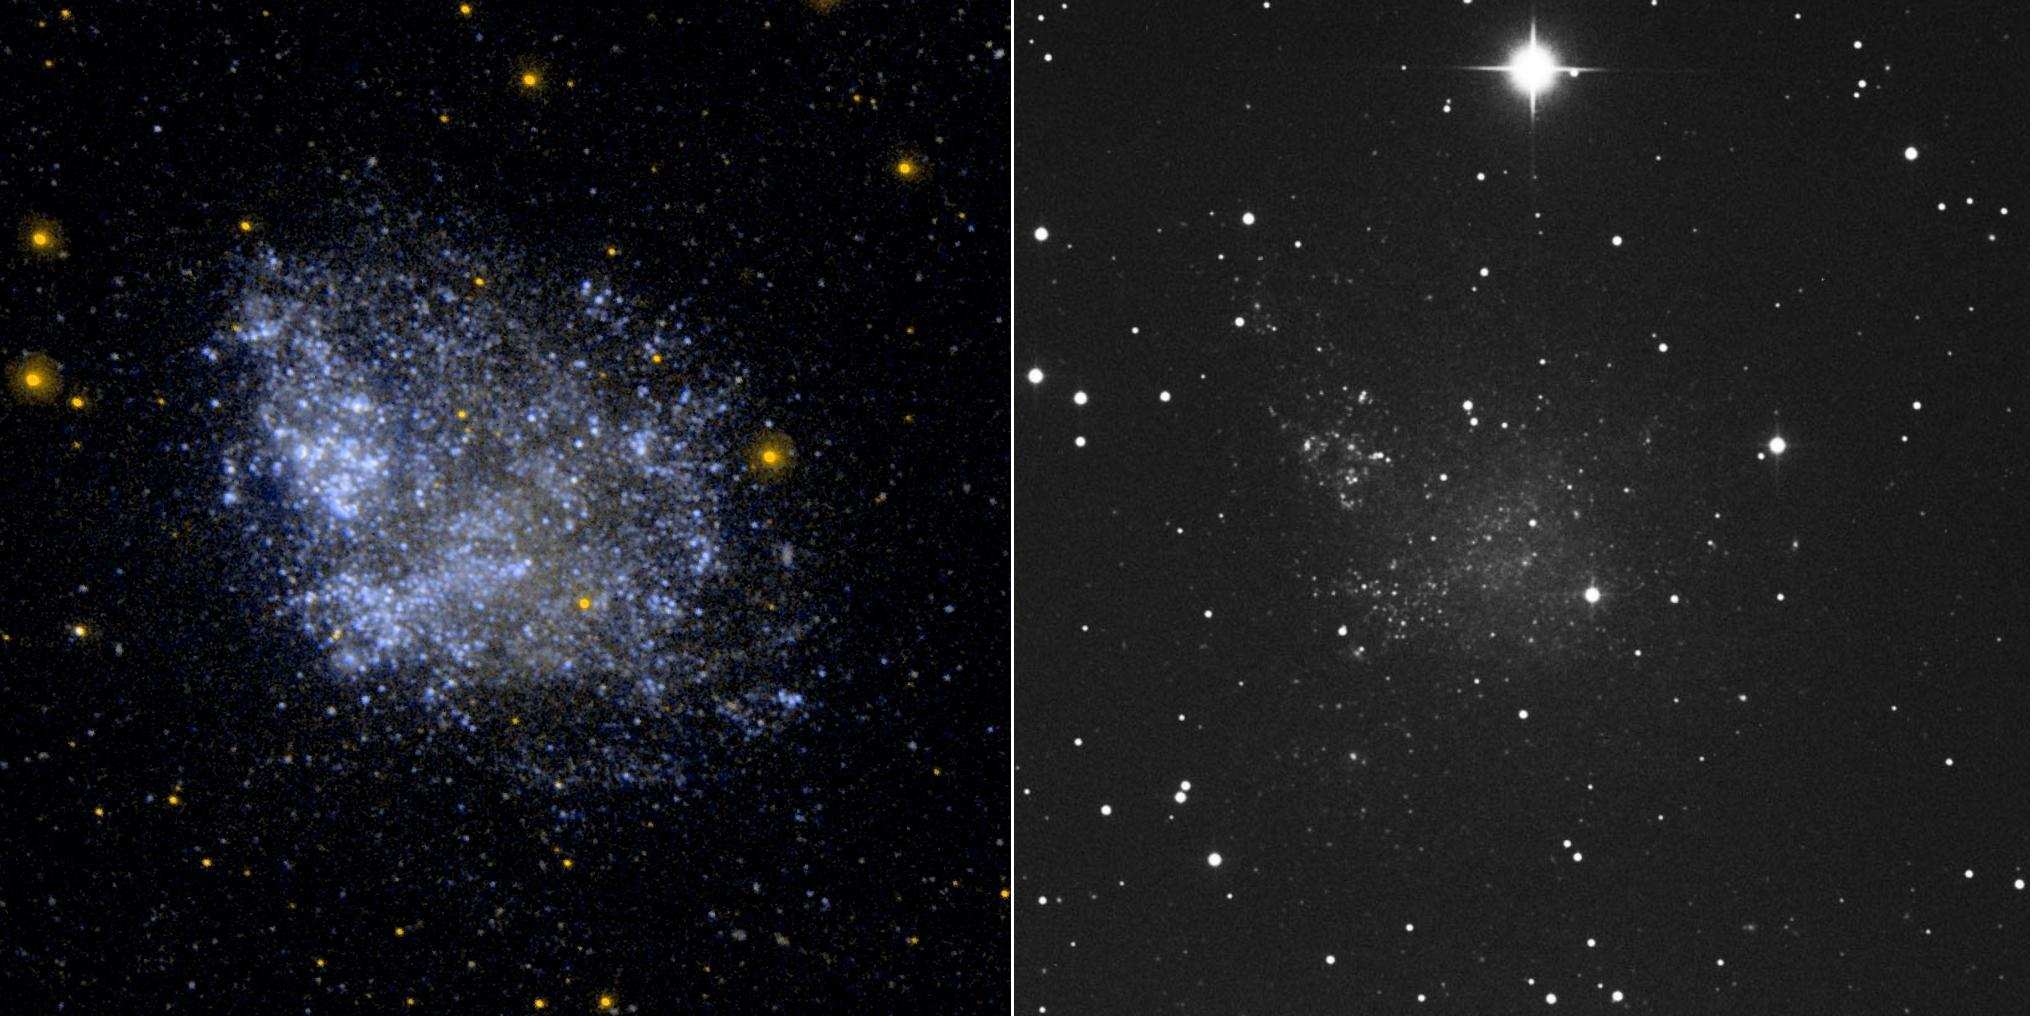 A comparison of the dwarf galaxy IC 1613 as seen in two different wavelengths. The image on the left is light blue and is populated with many specks of light against a nearly black background. This is the ultraviolet. The image on the right is visible light and only a few bright white stars stand out with a patch of haze in the center.